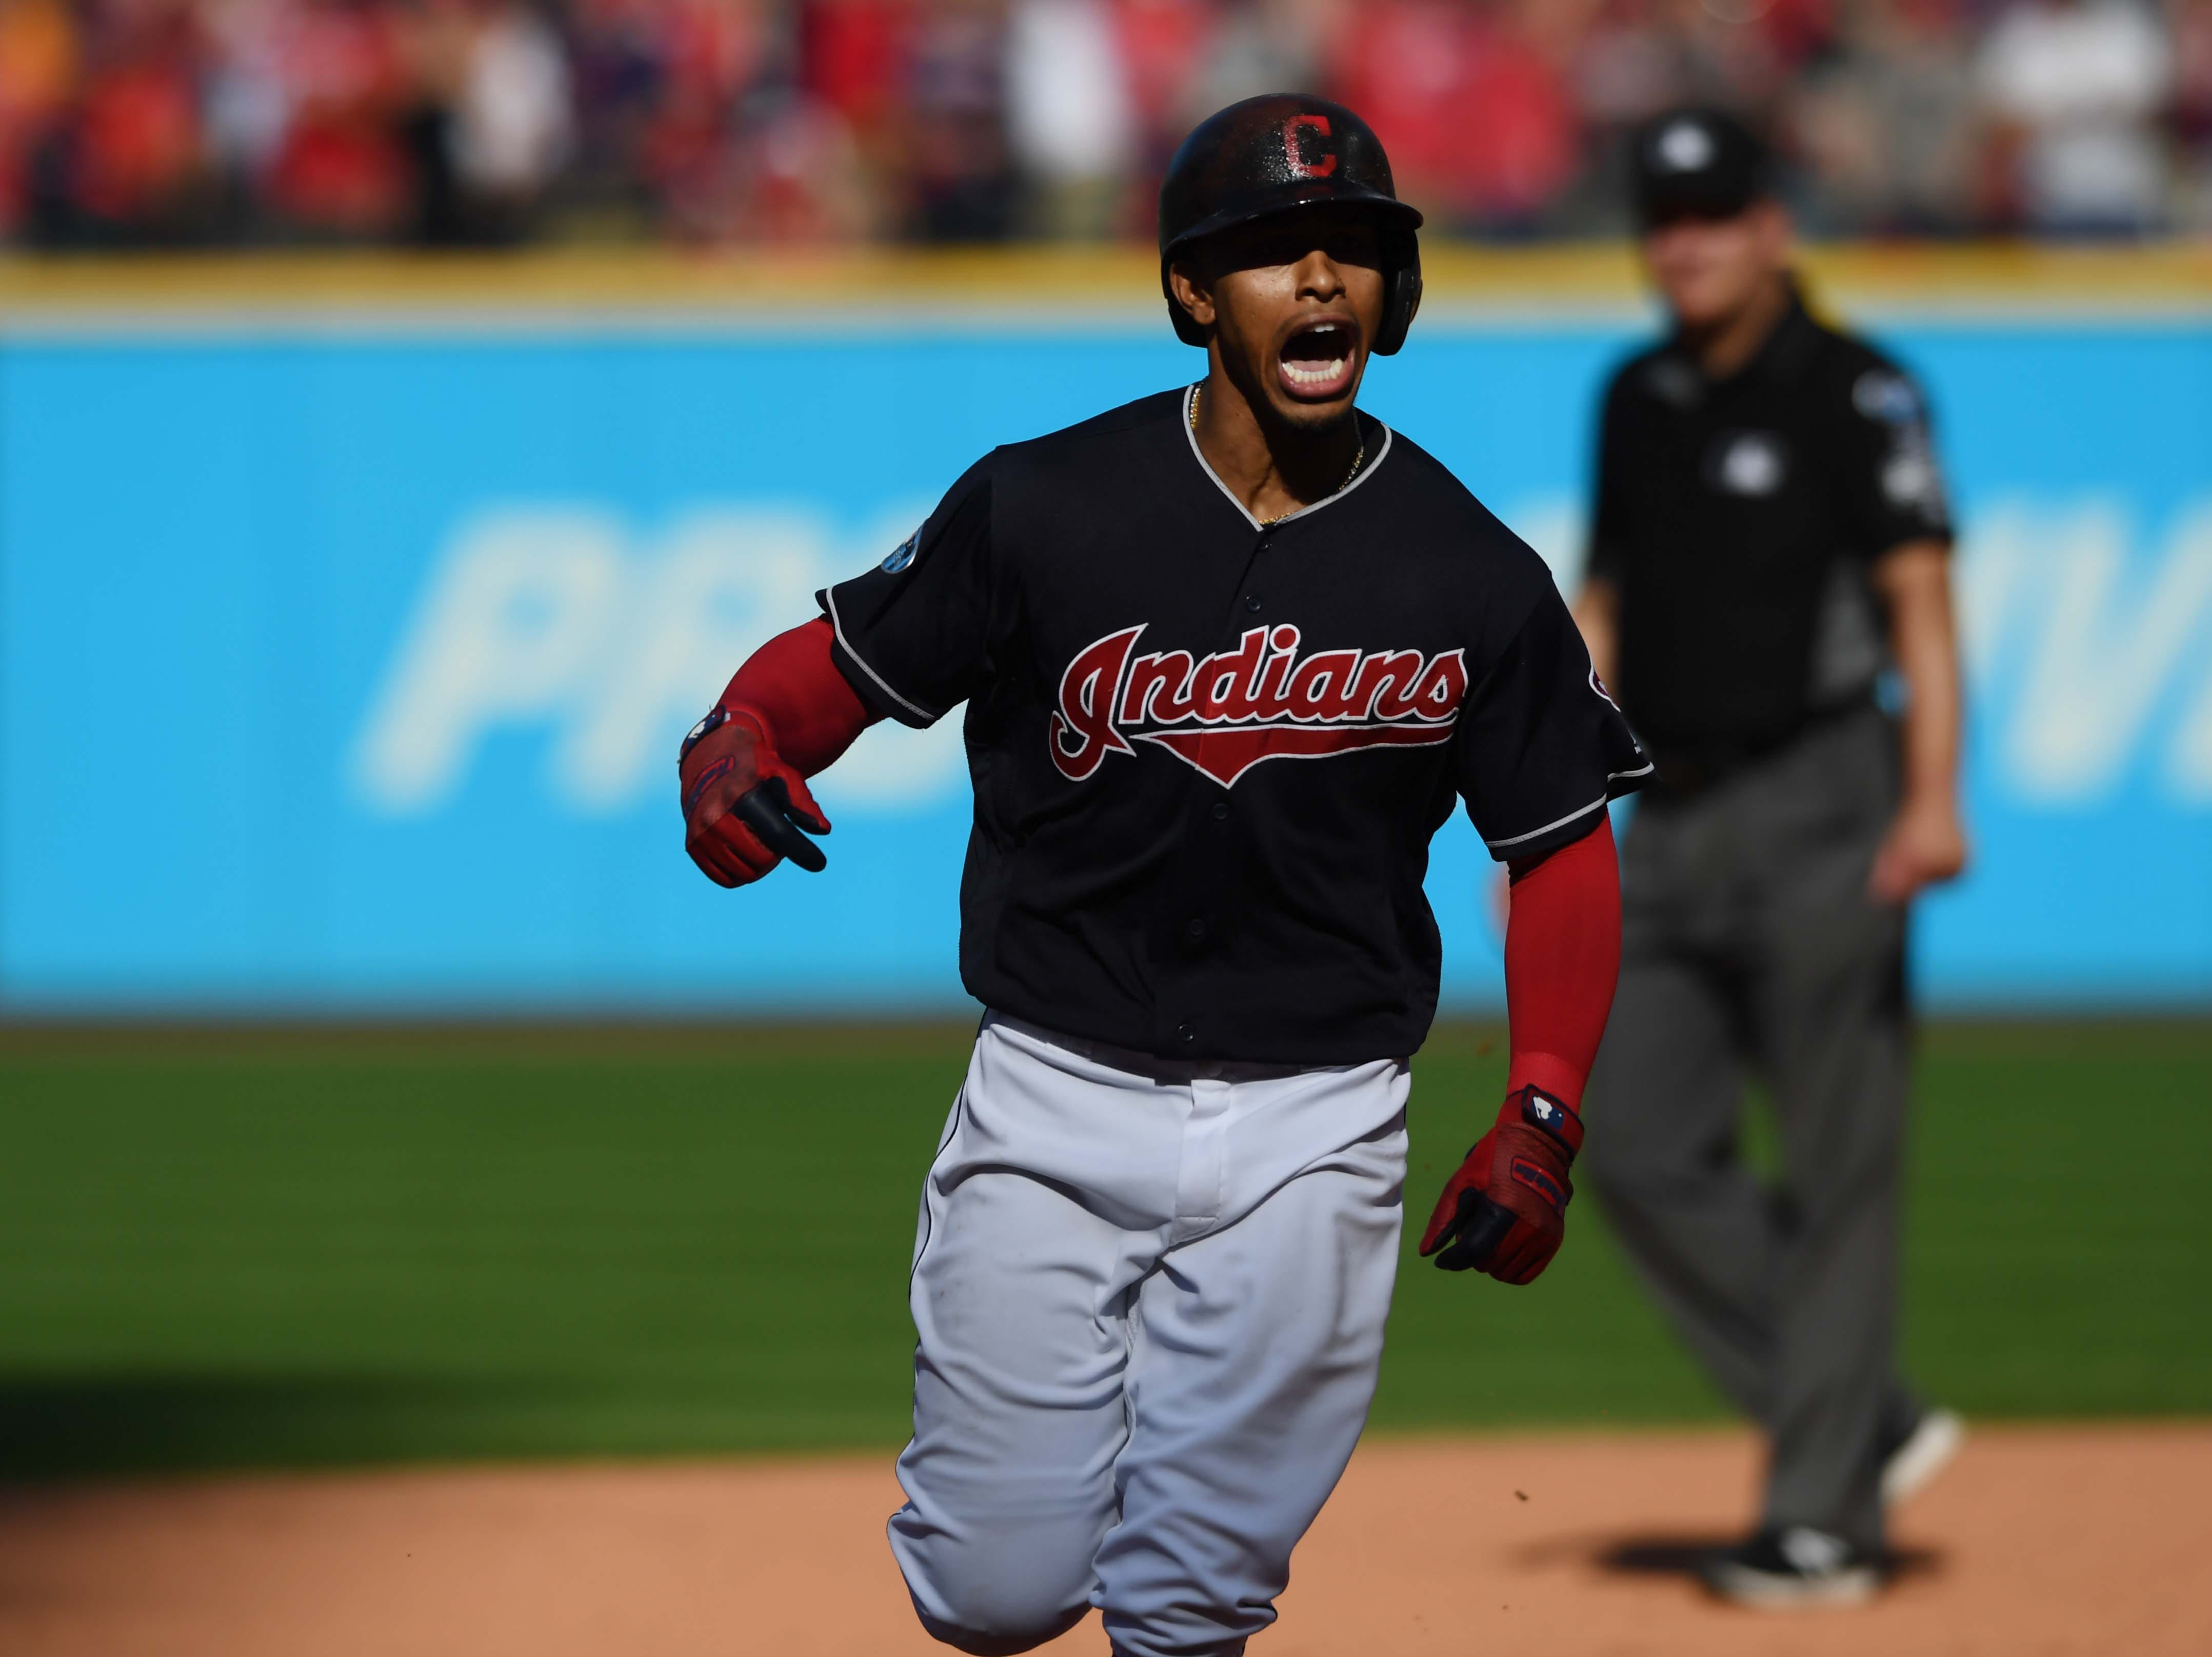 ALDS Game 3: Francisco Lindor celebrates his home run in the fifth inning.